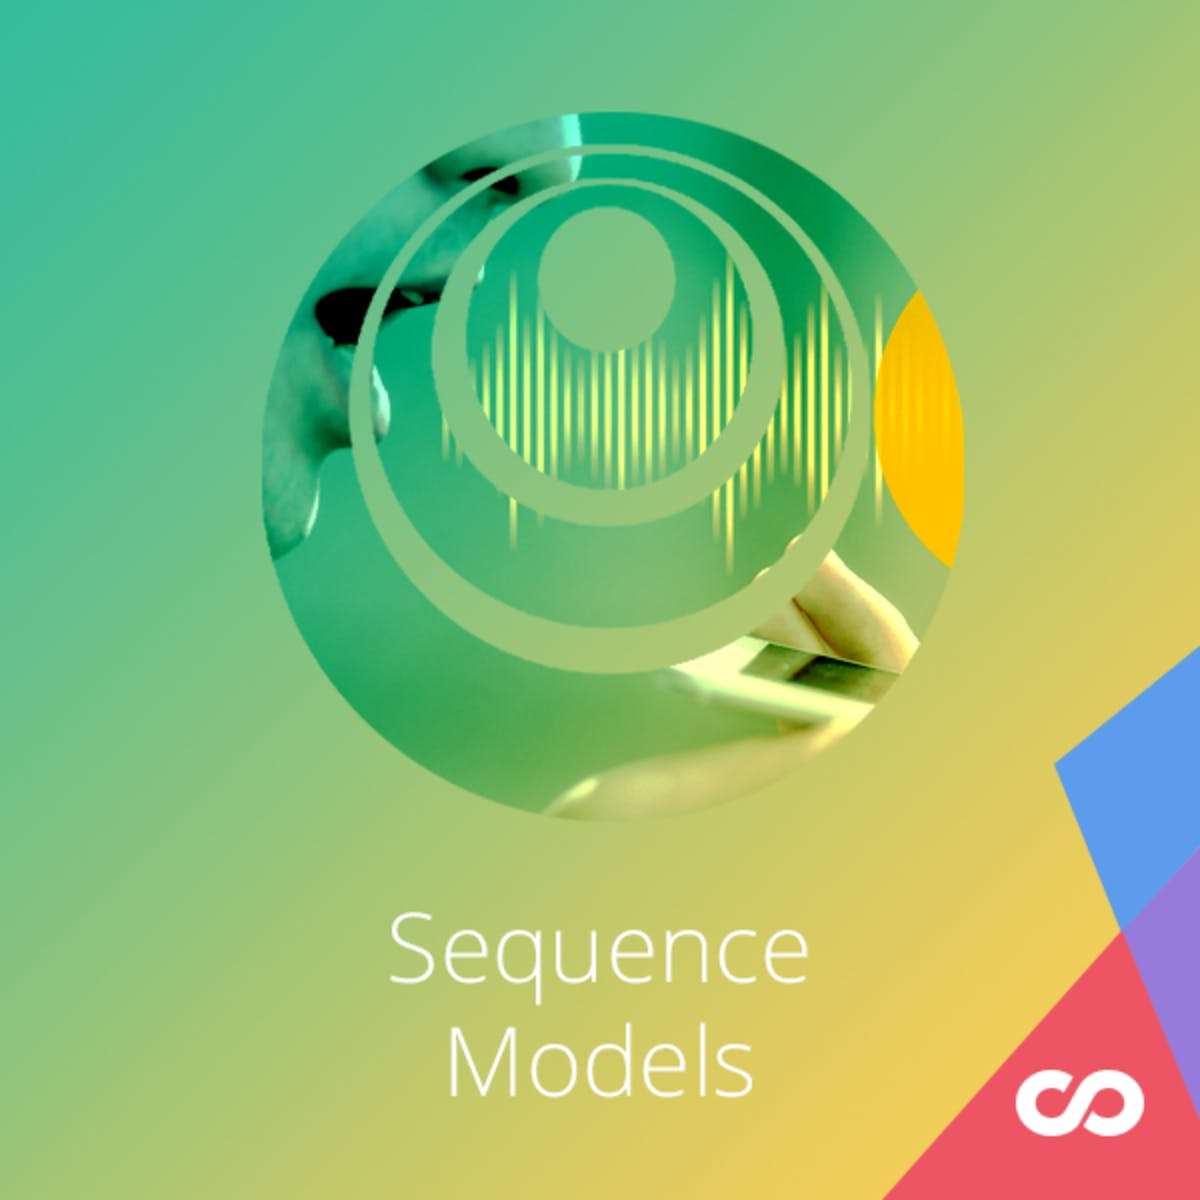 Sequence Models